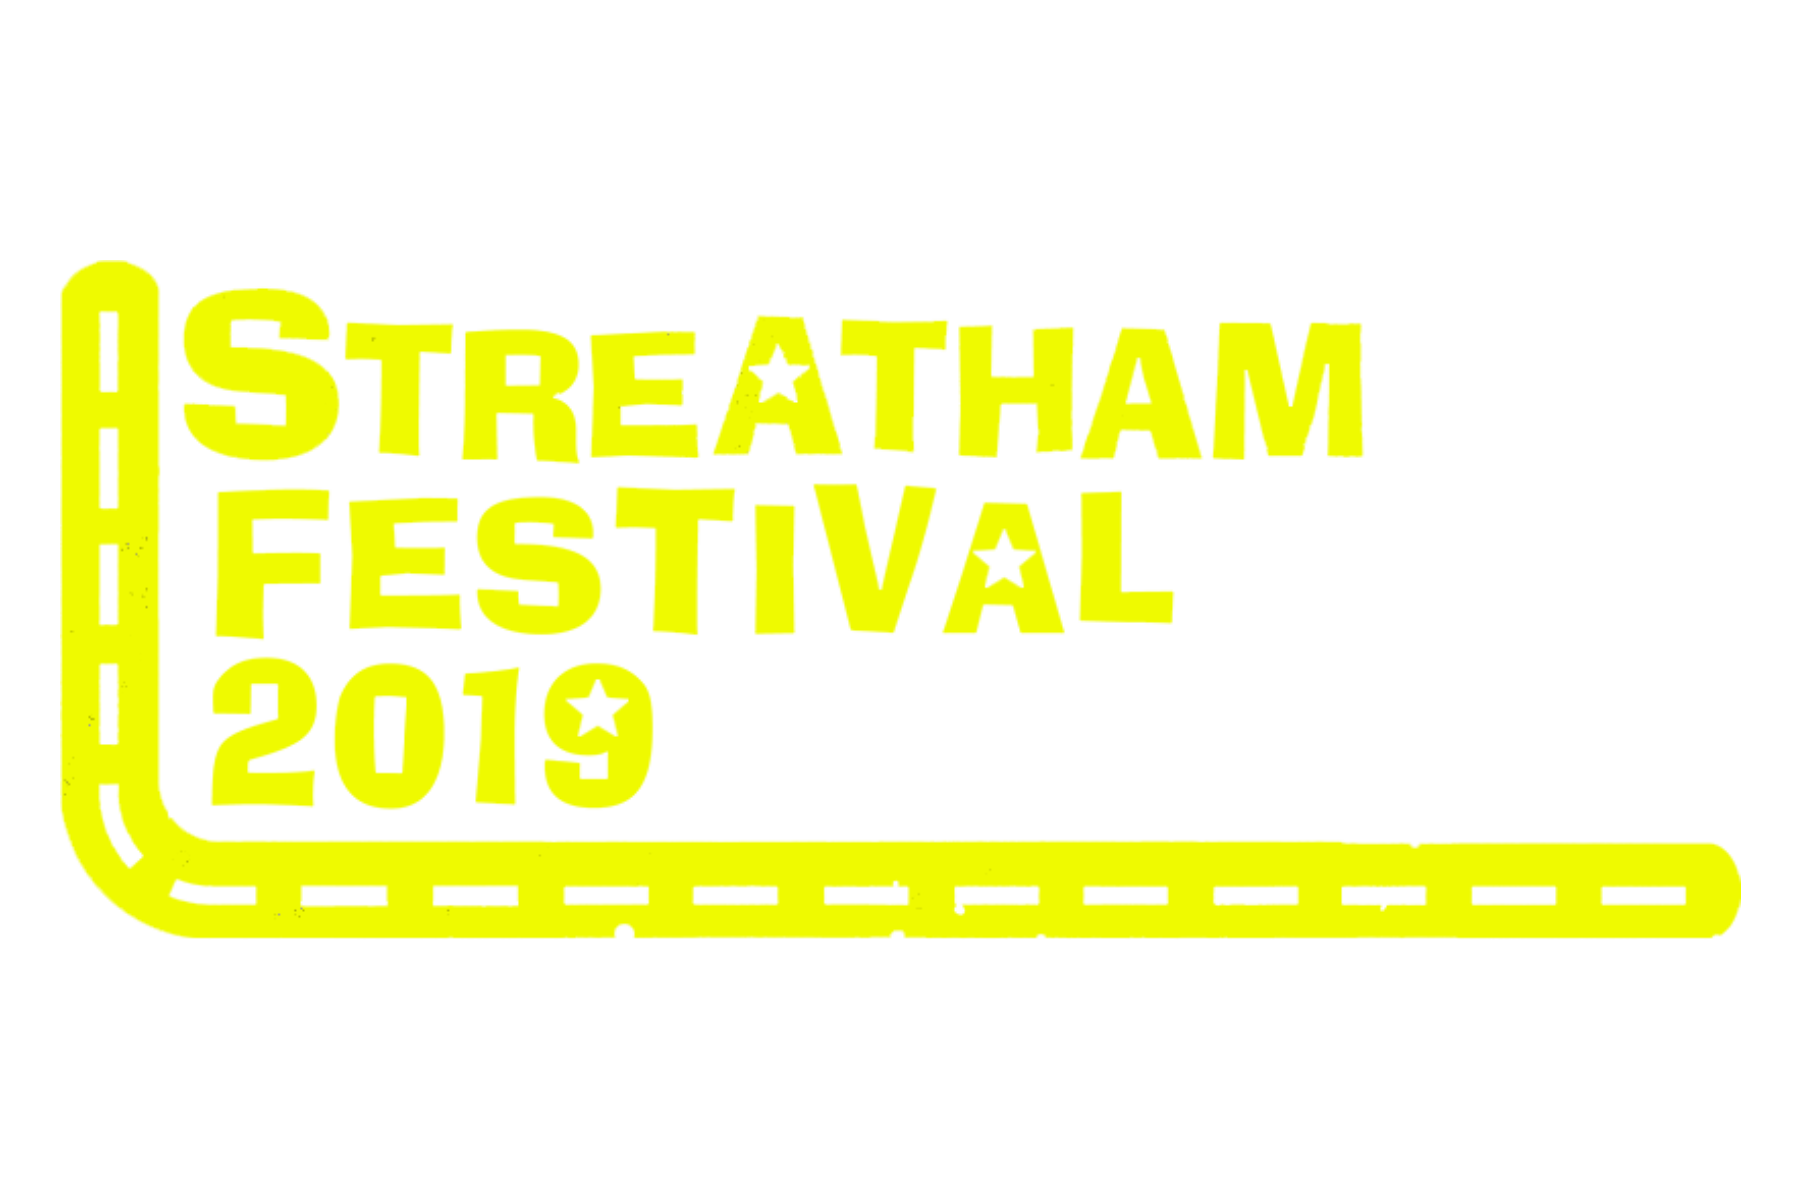 streatham_yellow.png